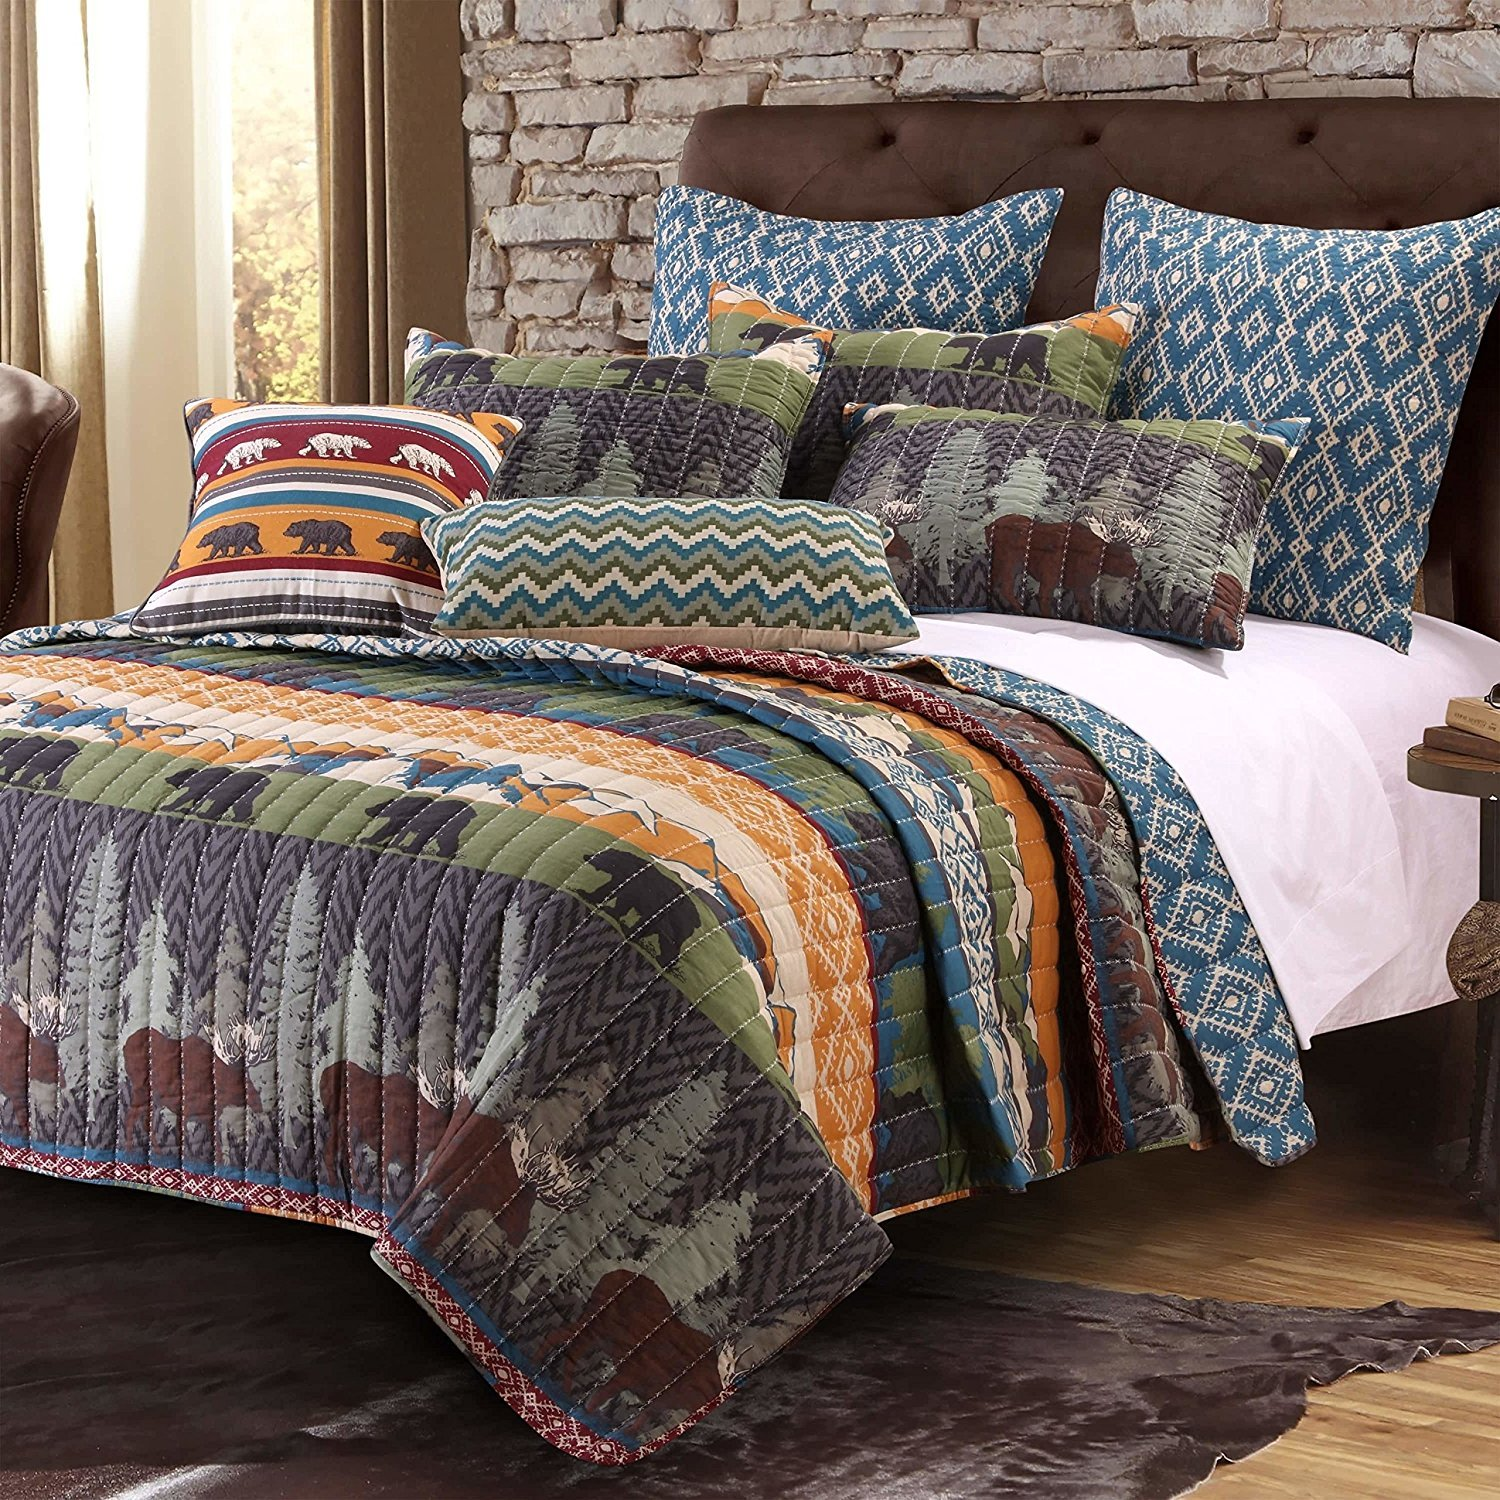 3pc Brown Lodge Theme Full Queen Quilt Set, Cotton Polyester, Rustic Animal Hunting Country Southwest Pine Trees Cabin Bedding Woods Horizontal Stripes Medallion Geometric Pattern